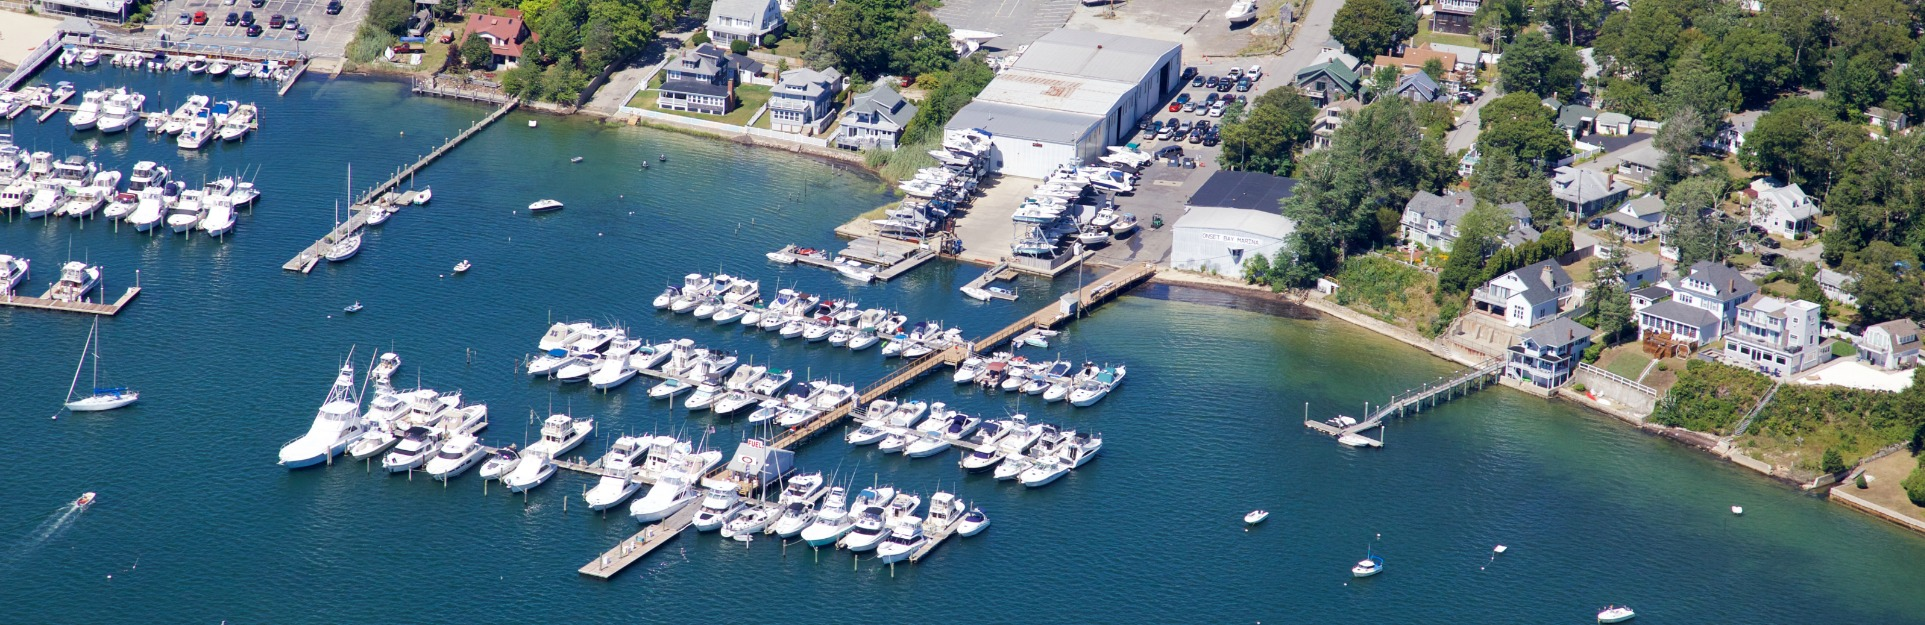 Brewer Onset Bay Marina in Buzzards Bay, MA